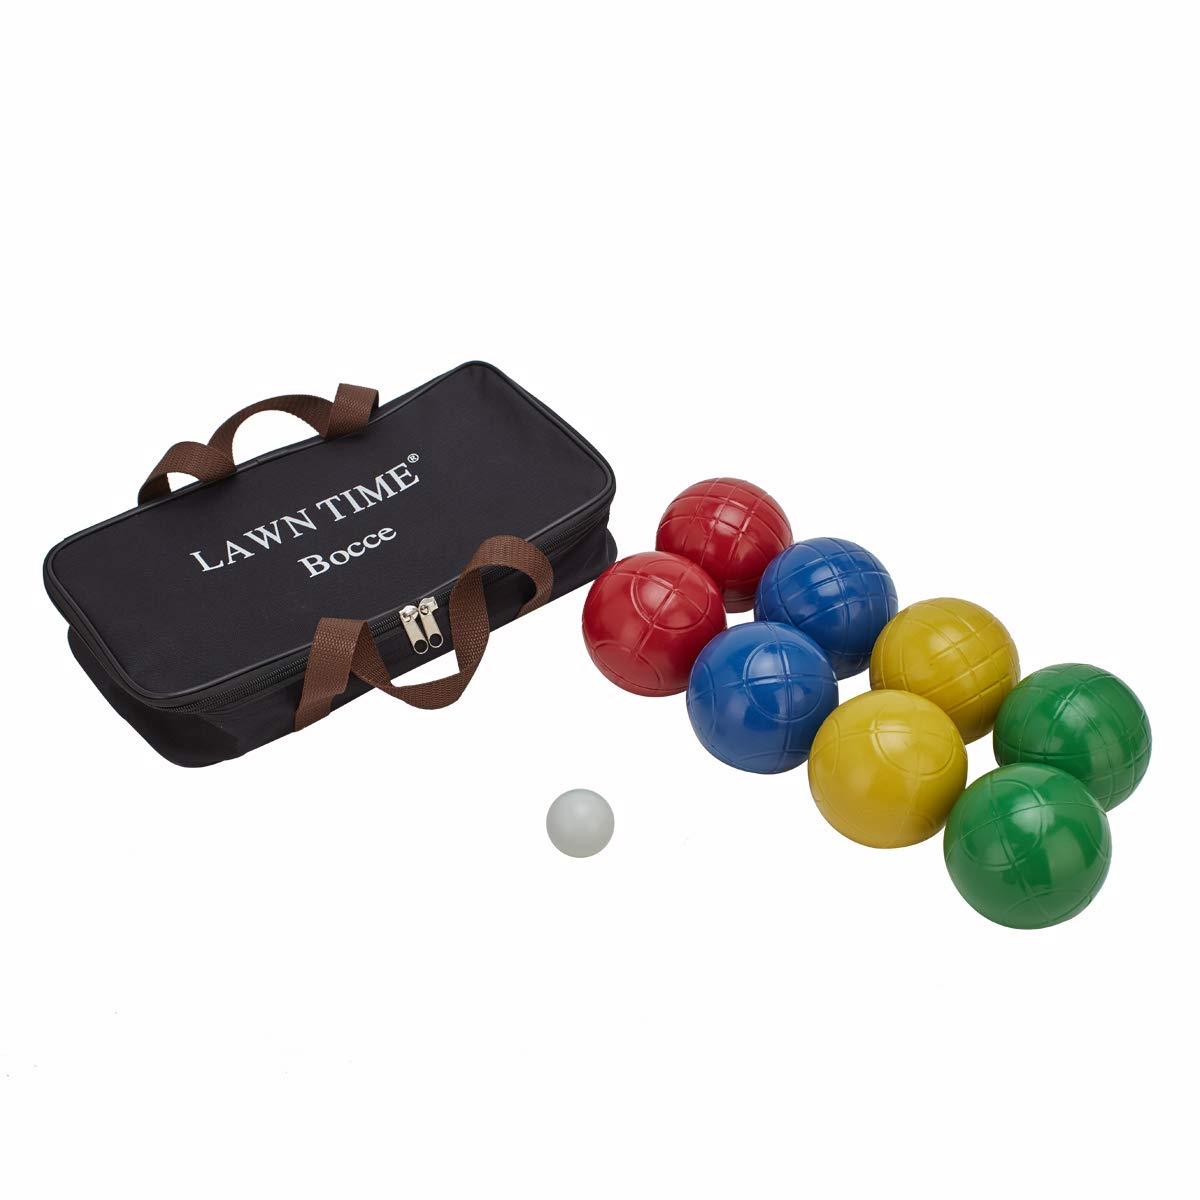 LAWN TIME 90mm Bocce Ball Set | Includes 8 Recreational Plastic Balls, 1 Pallino (Jack Ball) and 1 Nylon Zip-Up Carrying Case | Beach, Backyard or Outdoor Party Game - Family Fun for All Ages by LAWN TIME (Image #4)